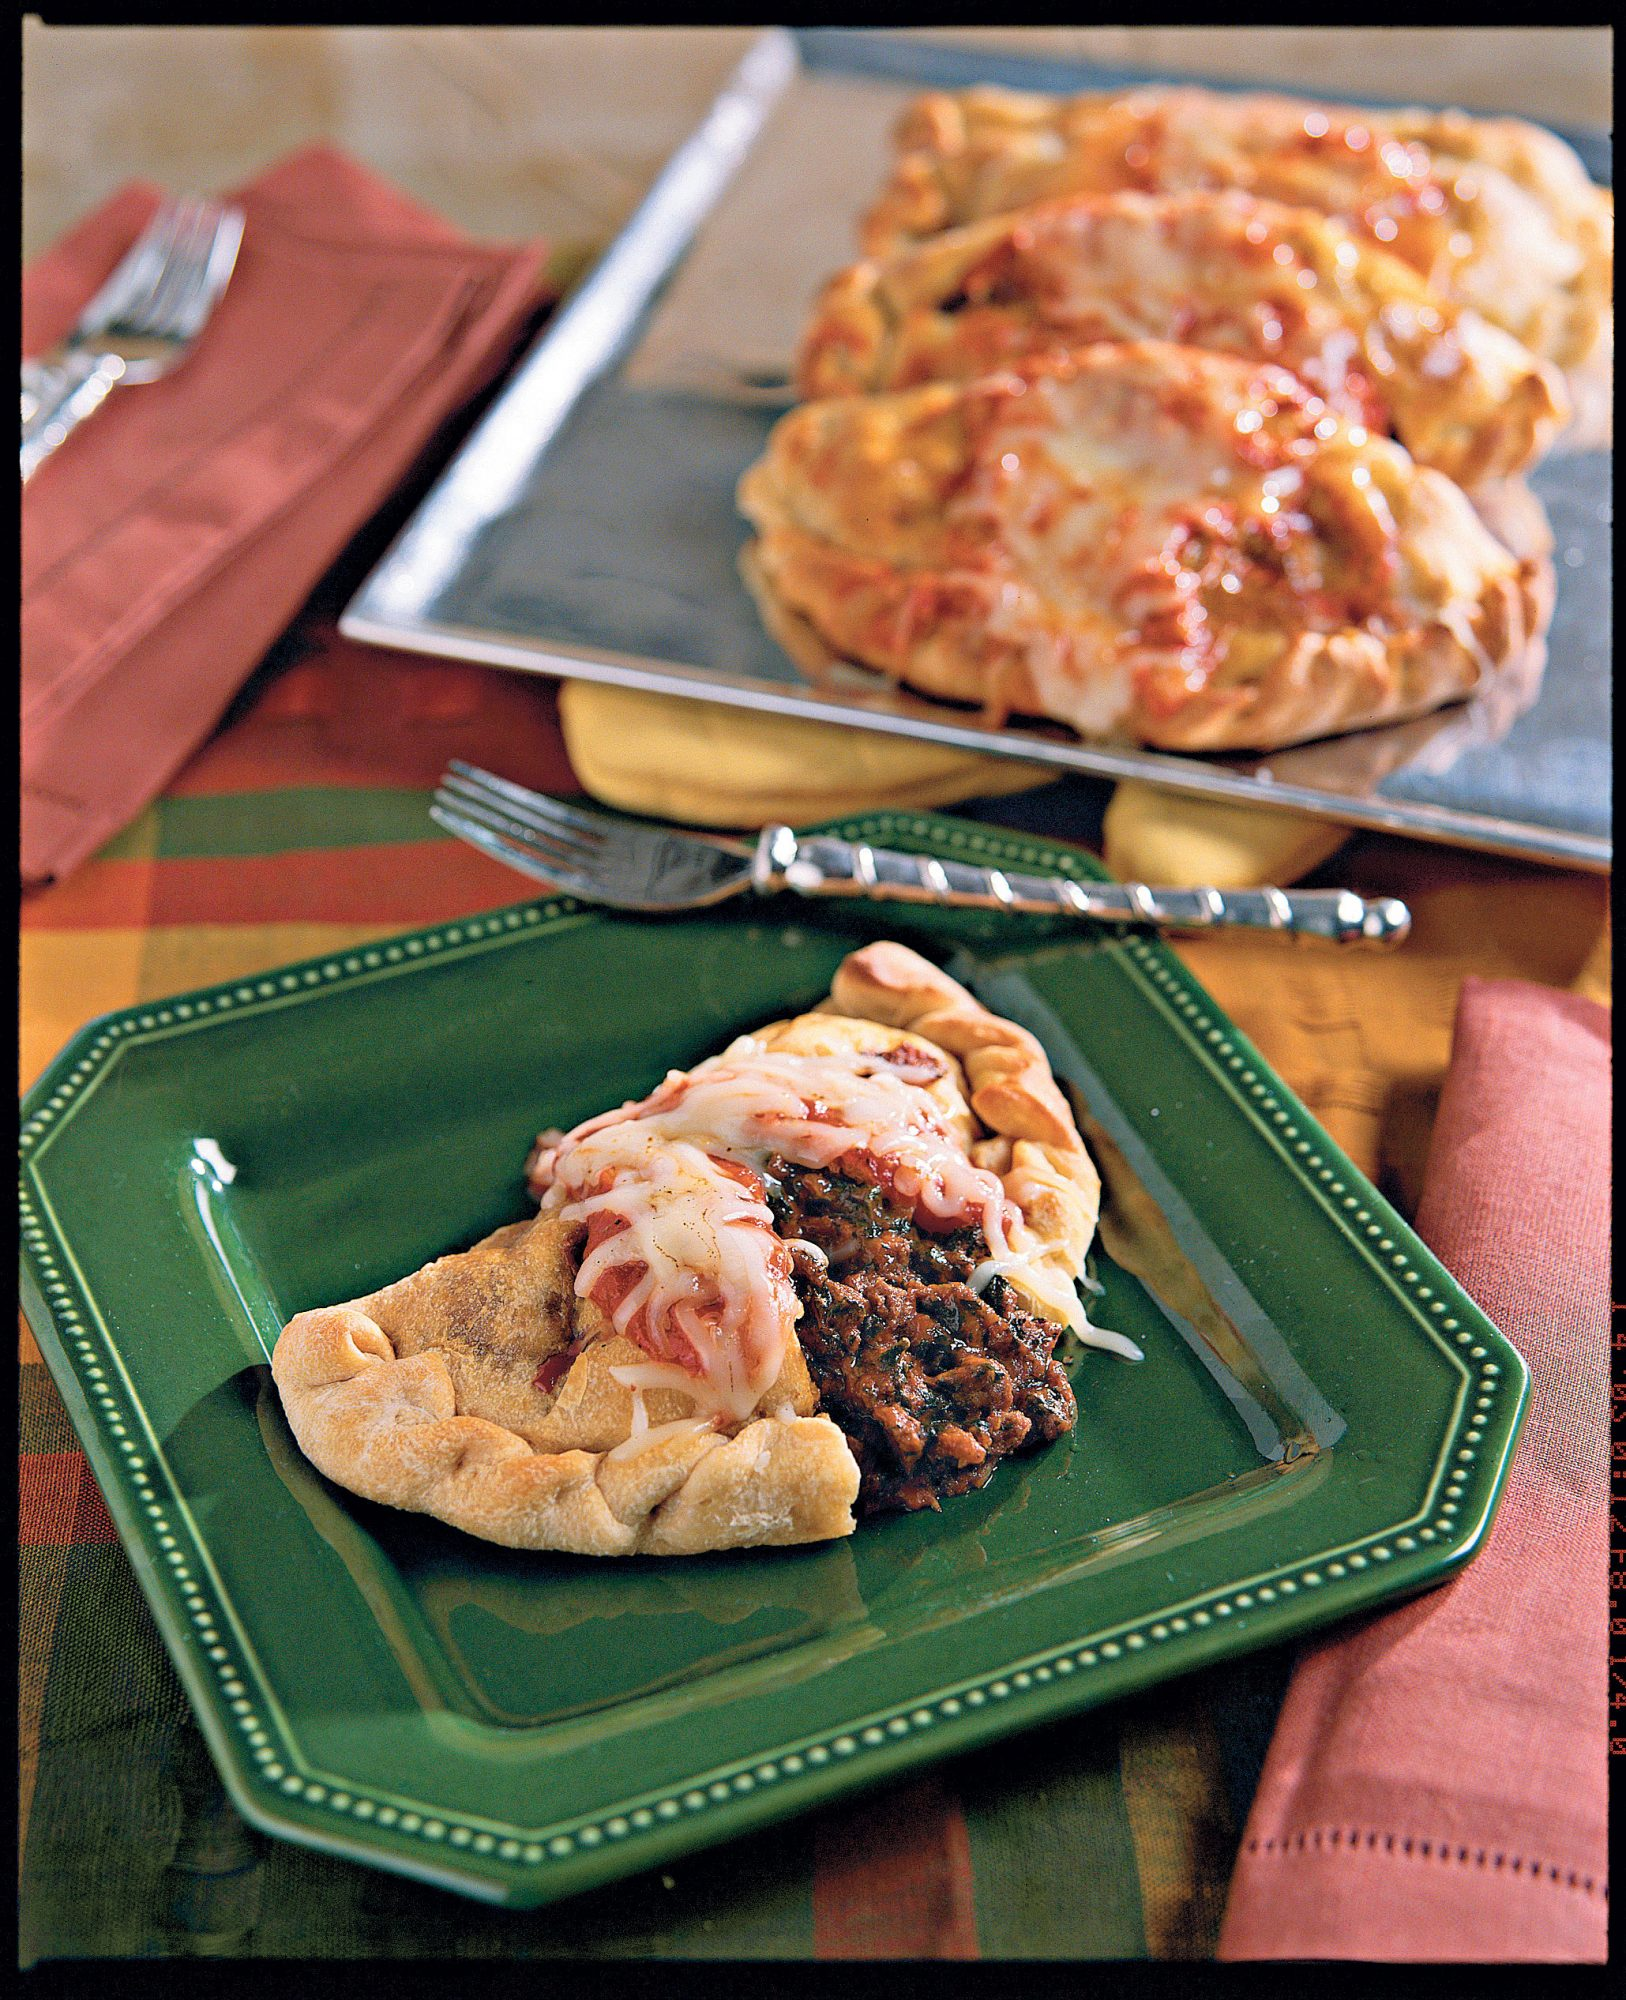 Supper Swap: Calzones with Italian Tomato Sauce Recipe